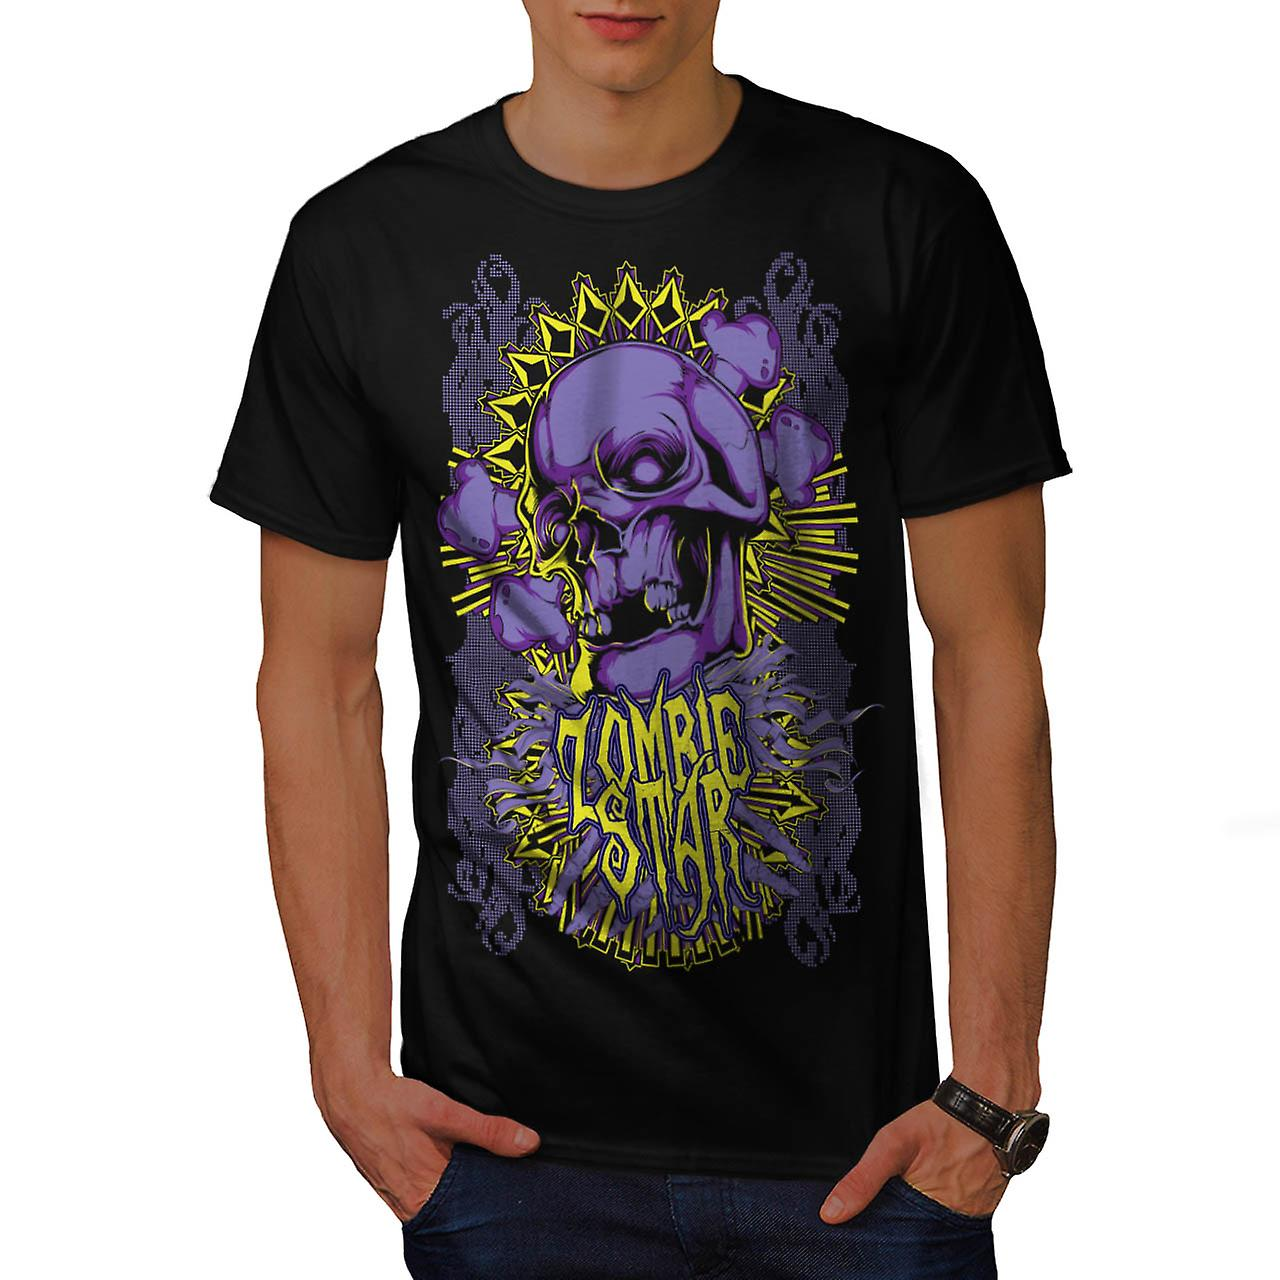 Monster Zombie Star Devils zon män svart T-shirt | Wellcoda